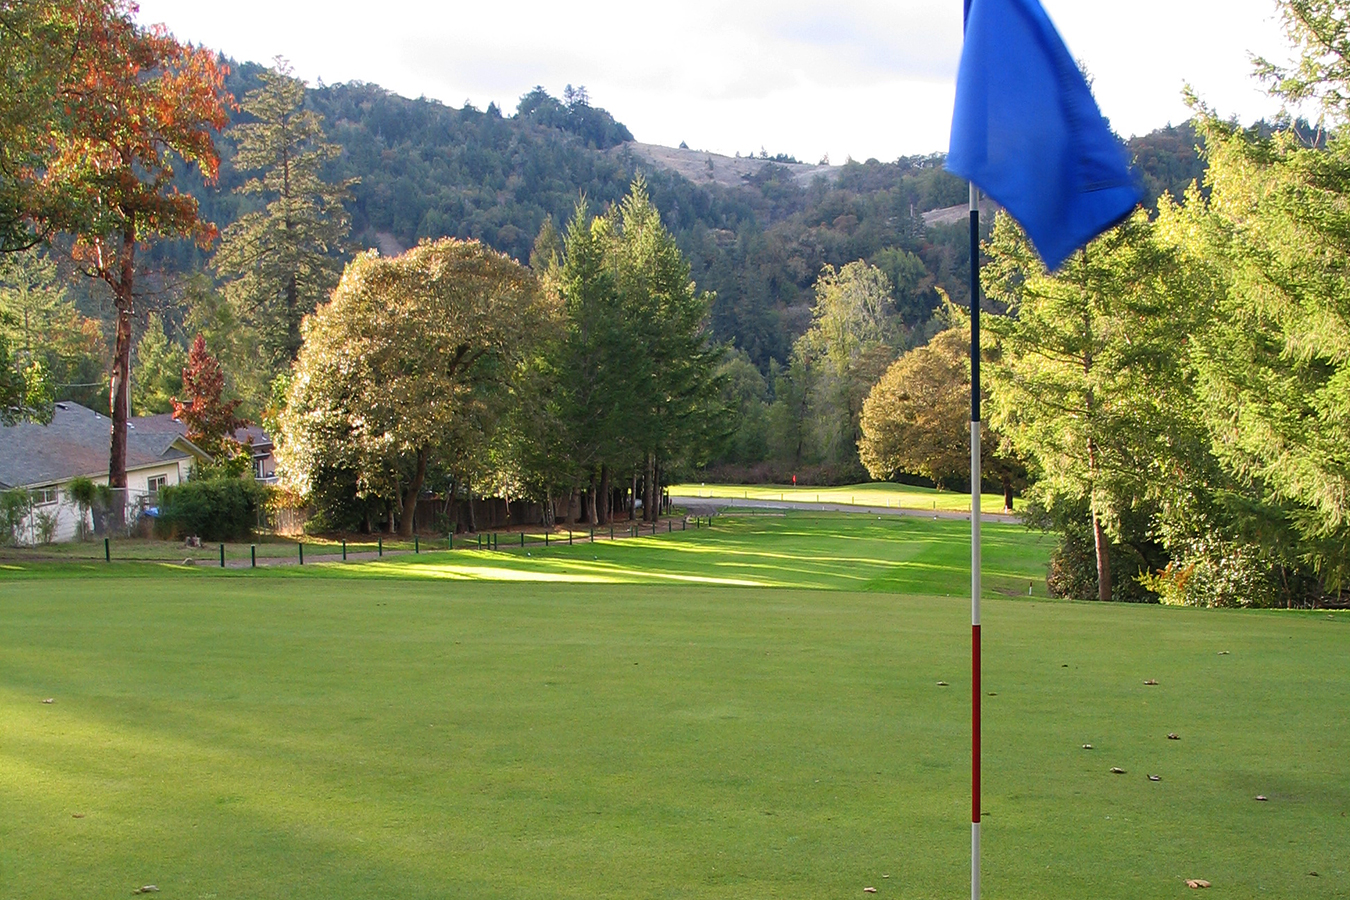 Benbow KOA Golf Course flag